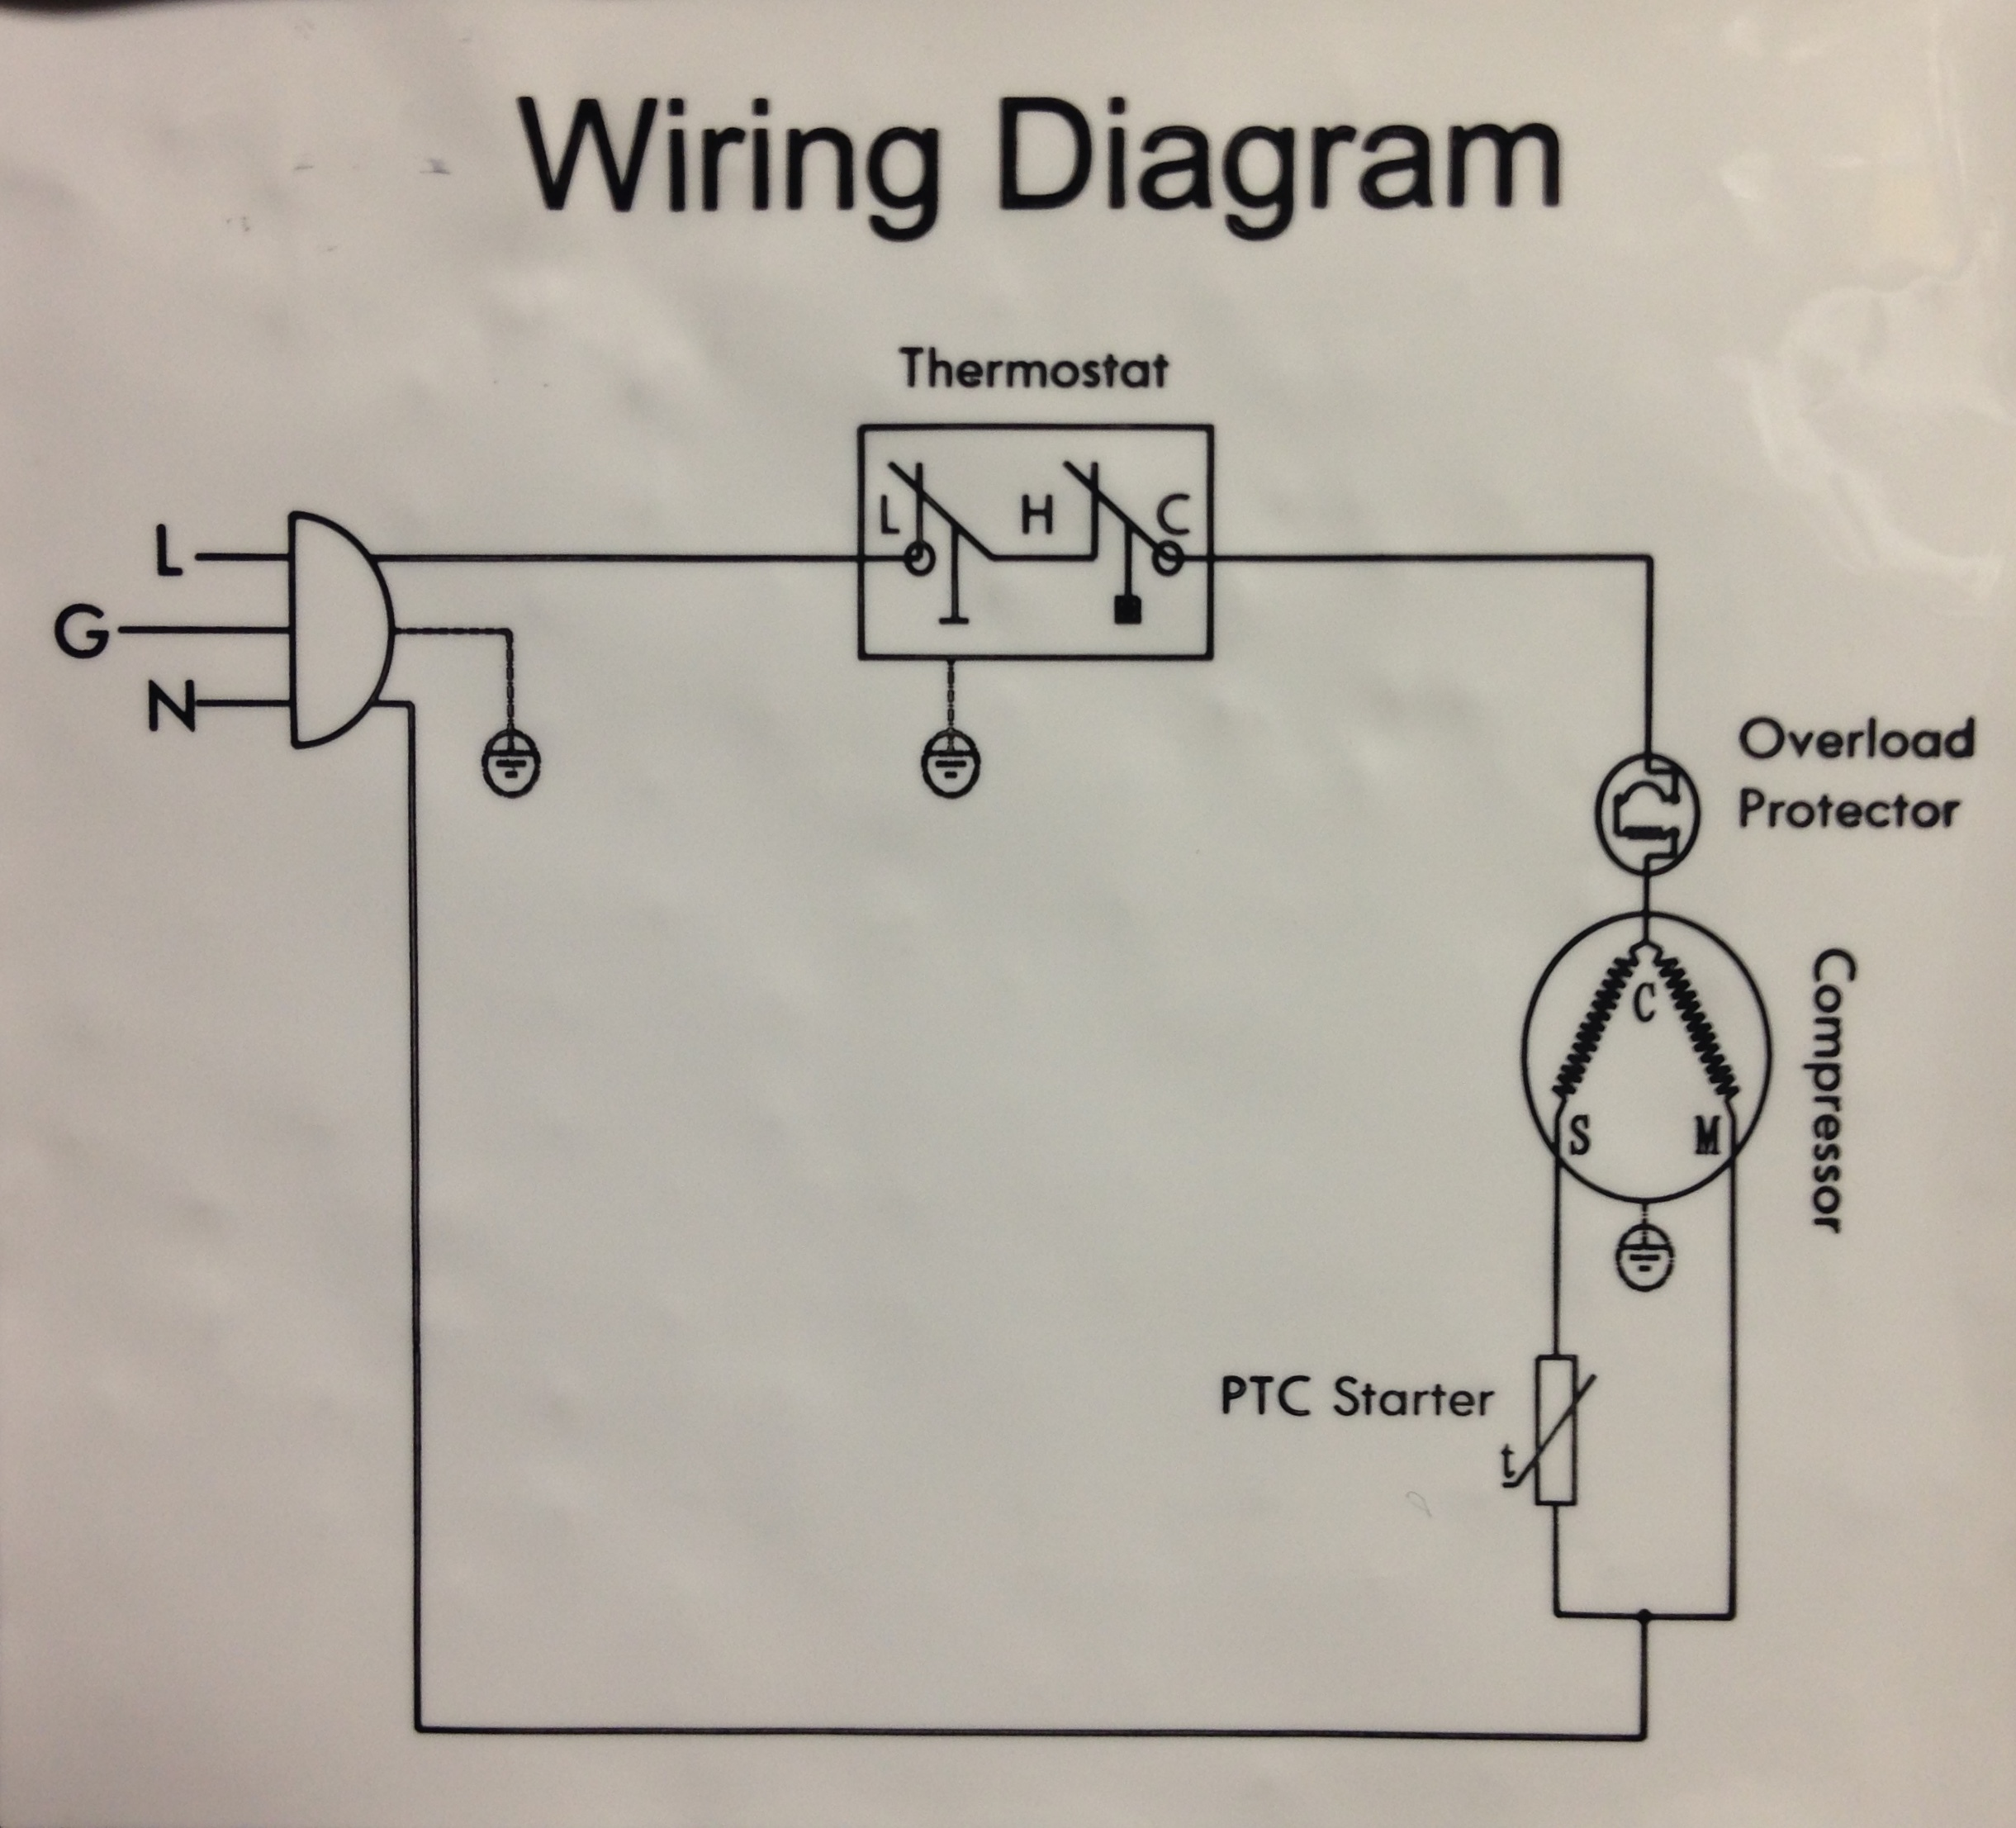 New Build Electronics Newb Diagram Help - fridge-build - BrewPi Community | Refrigerator Wiring Diagram |  | BrewPi Community